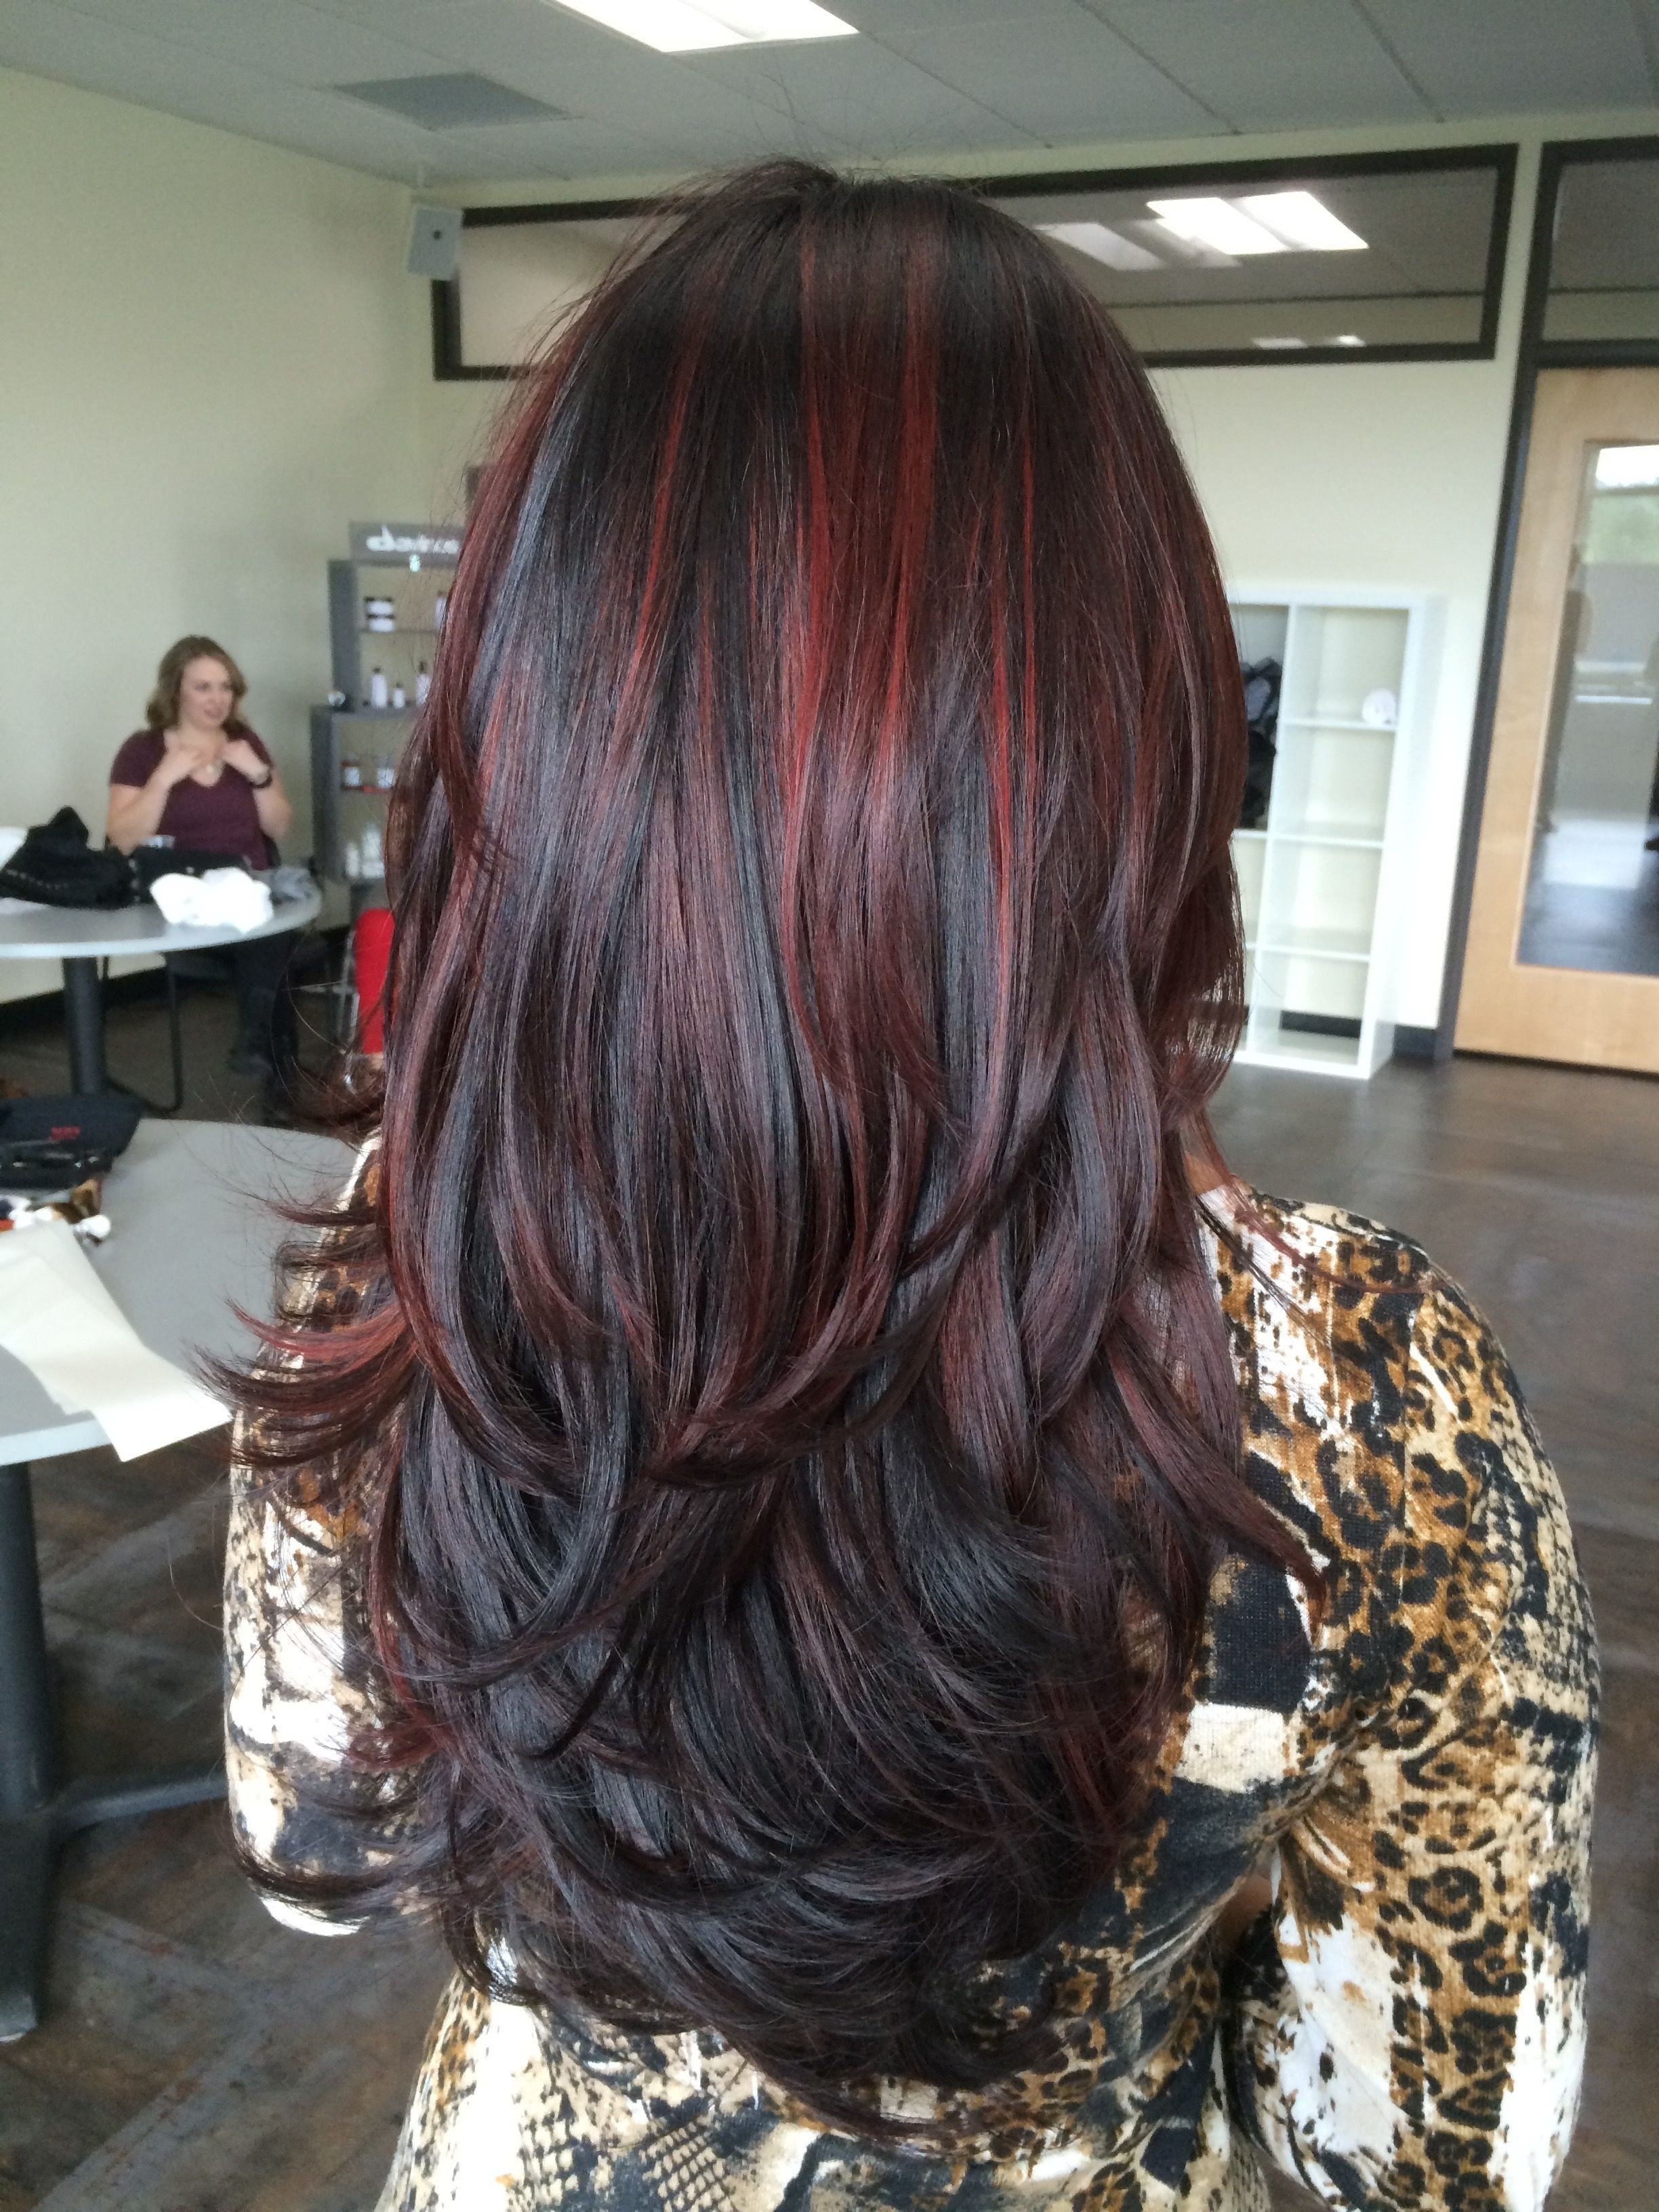 Hairstyles : Caramel Highlights Straight Hair Awe Inspiring with Asian Hair With Red Highlights